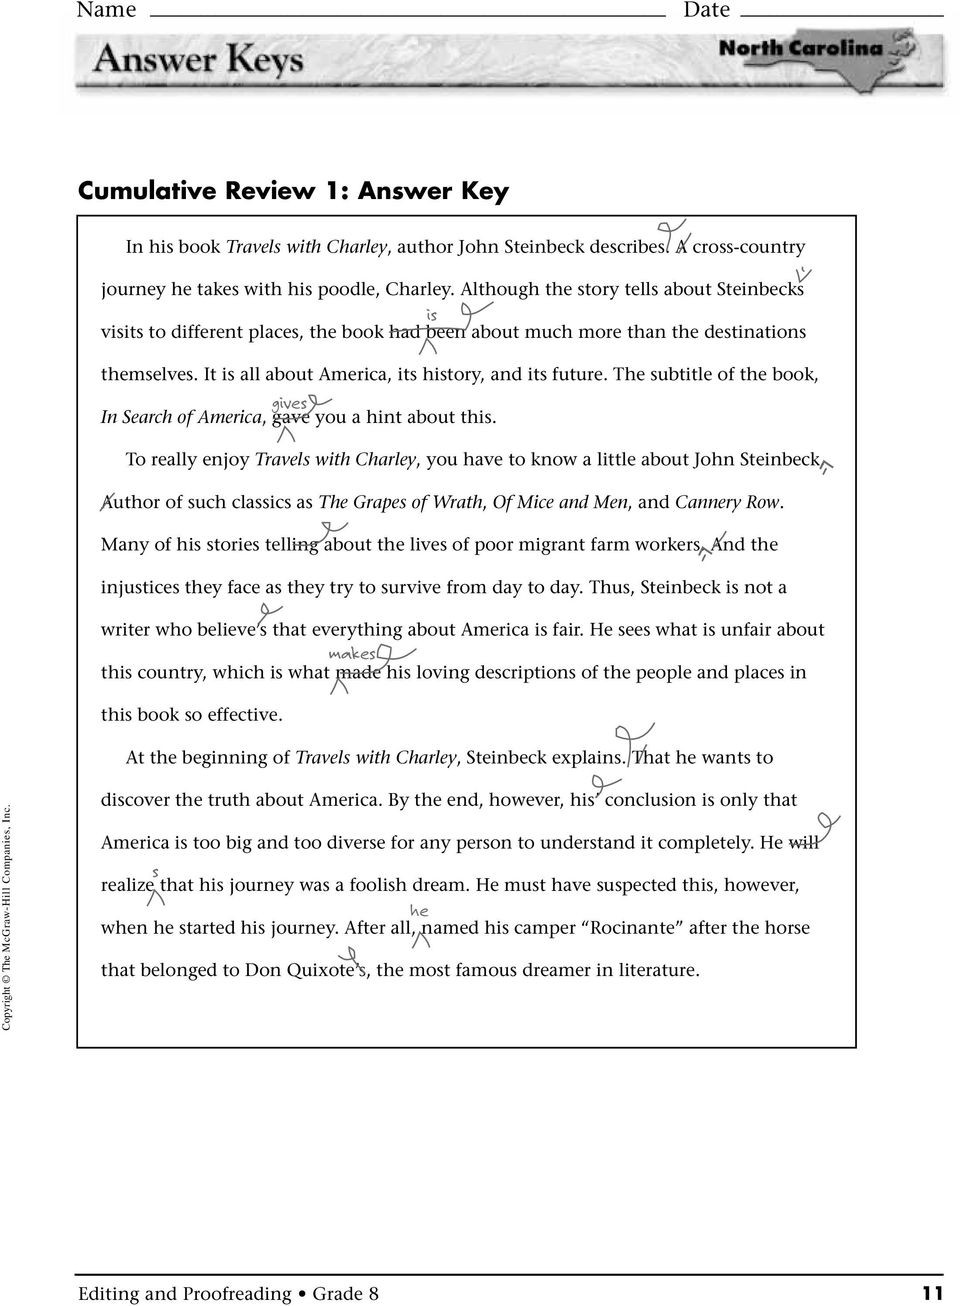 Proofreading Practice Middle School Editing and Proofreading Pdf Free Download